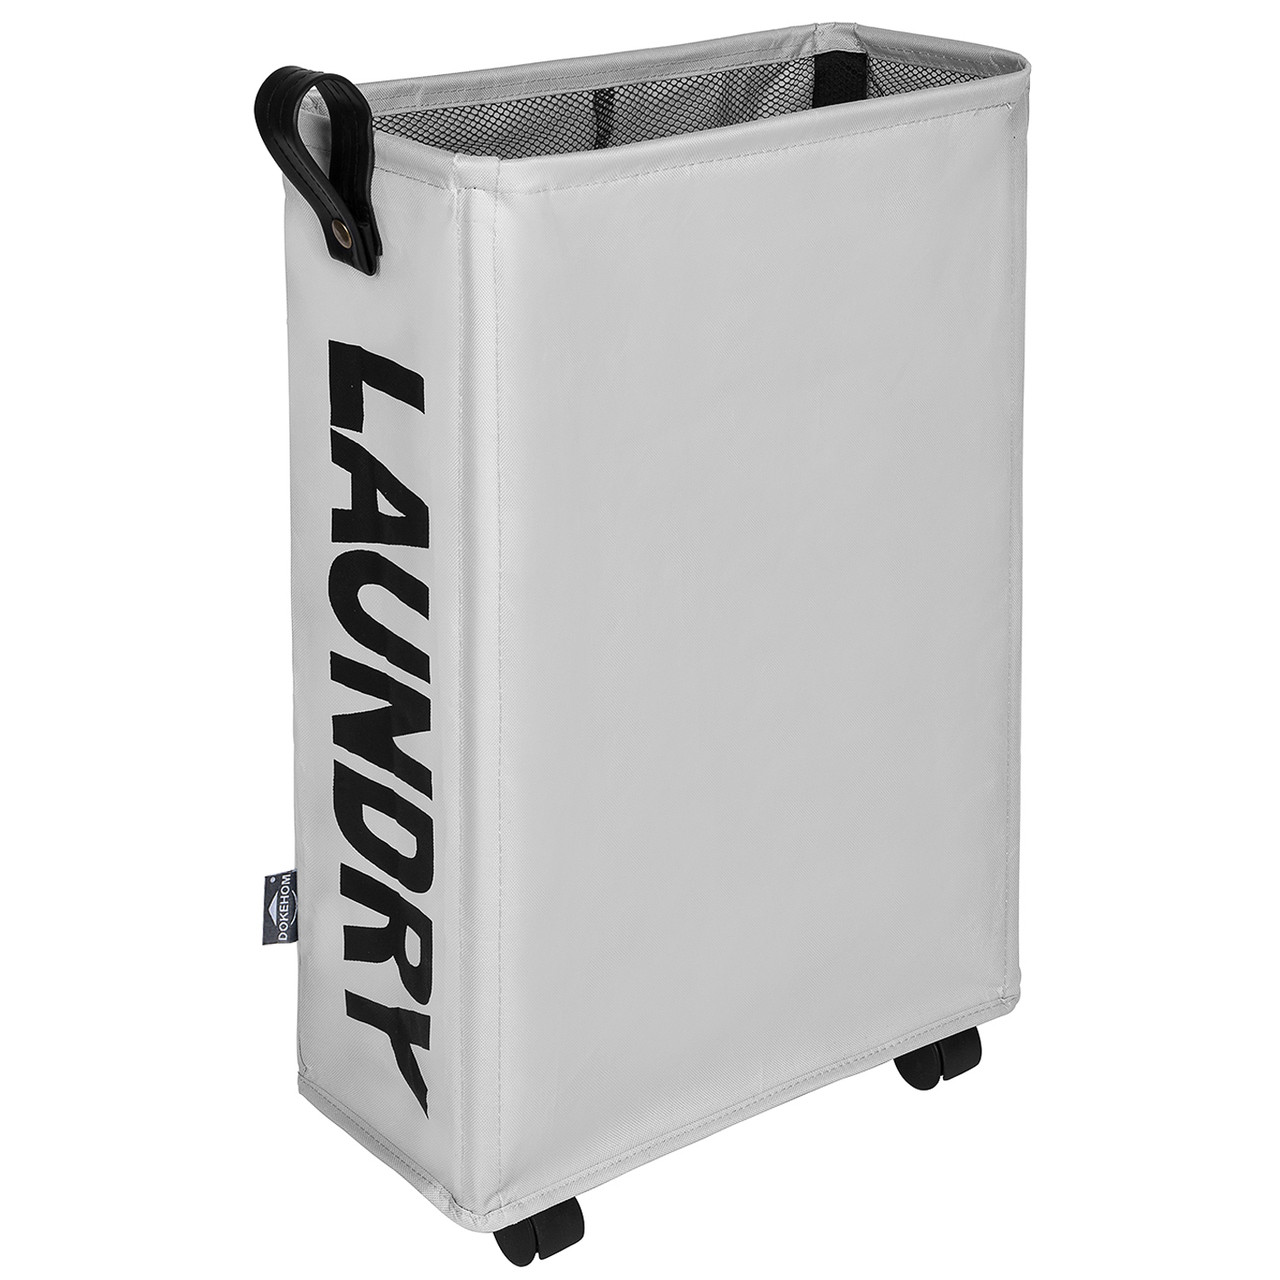 Dokehom Dka0210gym Large Laundry Basket With Lather Handle And Wheel 3 Colors M And L Collapsible Fabric Laundry Hamper Foldable Clothes Organizer Folding Washing Bin Grey M Ningbo Imotech Technology Co Ltd